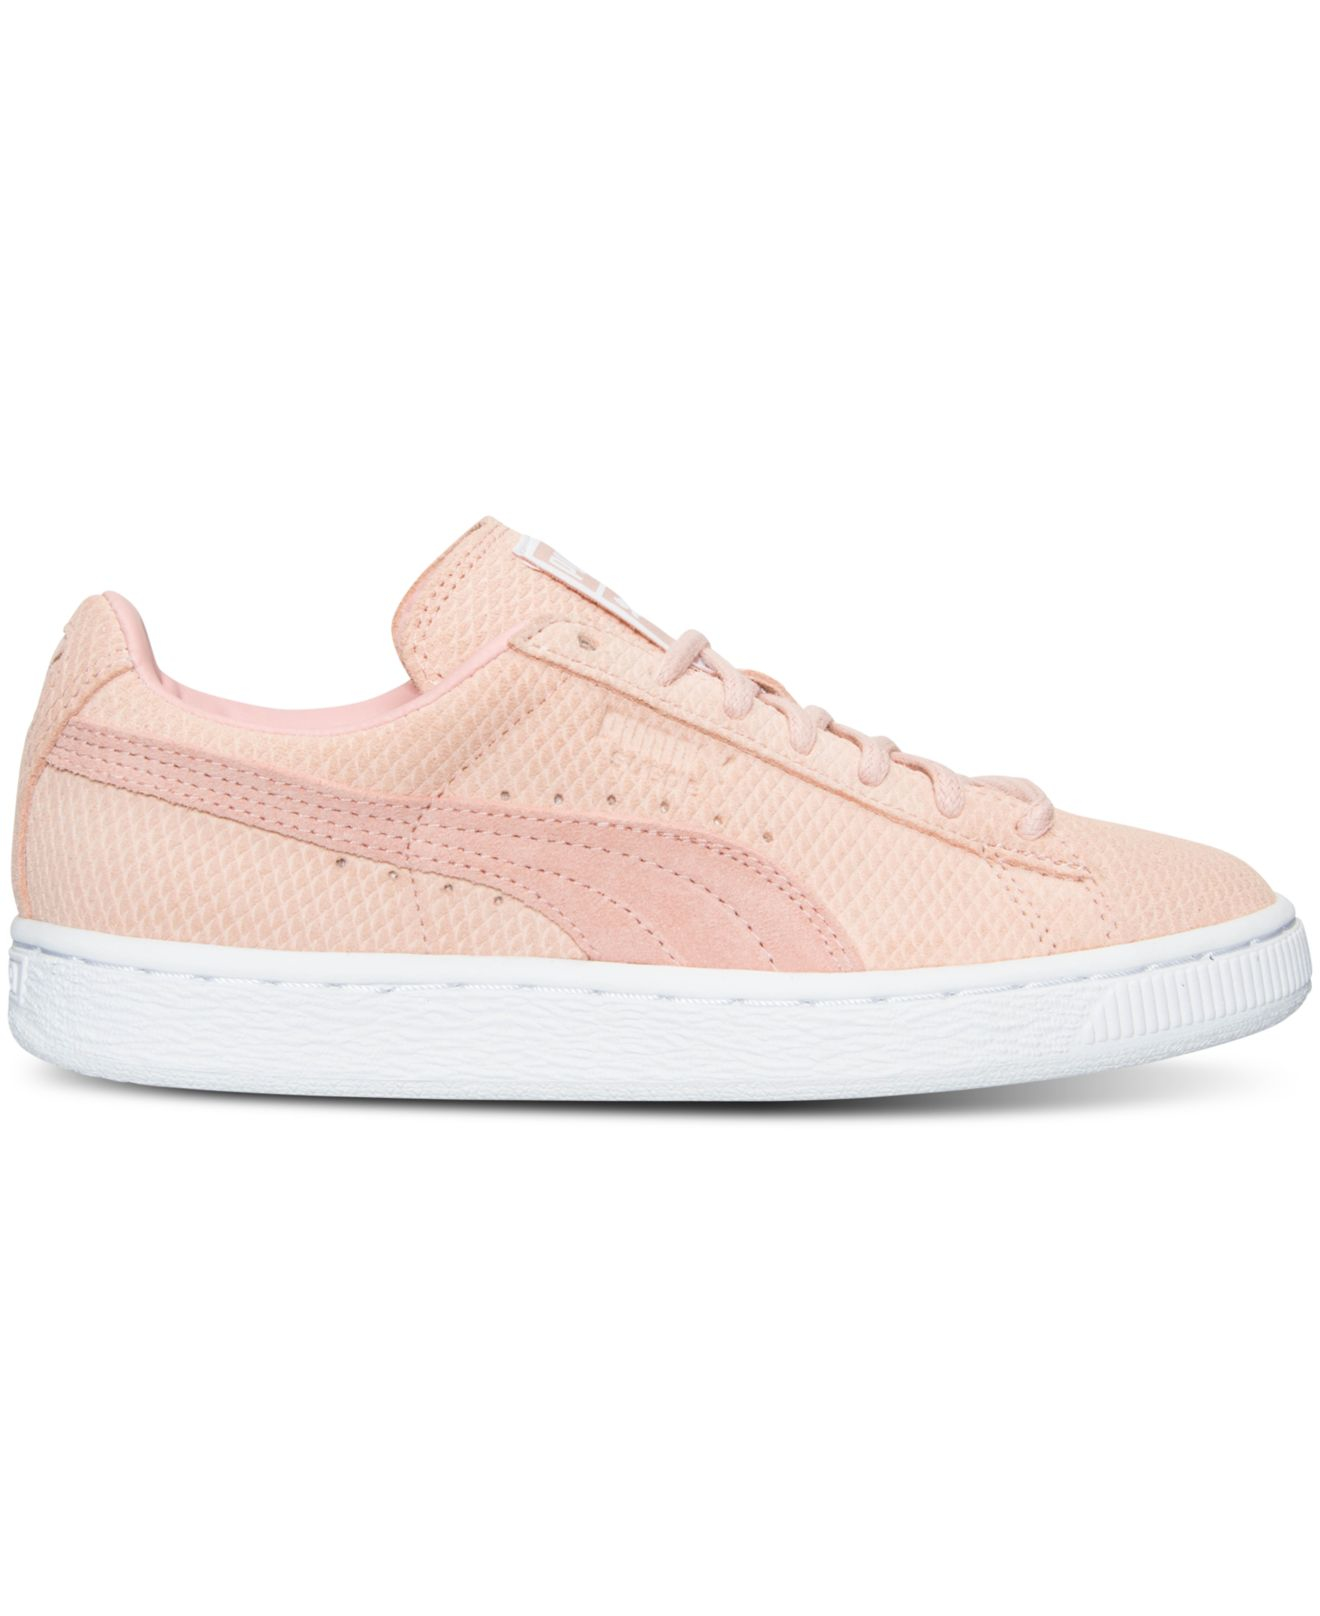 Lyst - PUMA Women s Suede Classic Winterized Lo Casual Sneakers From ... 89a46847c